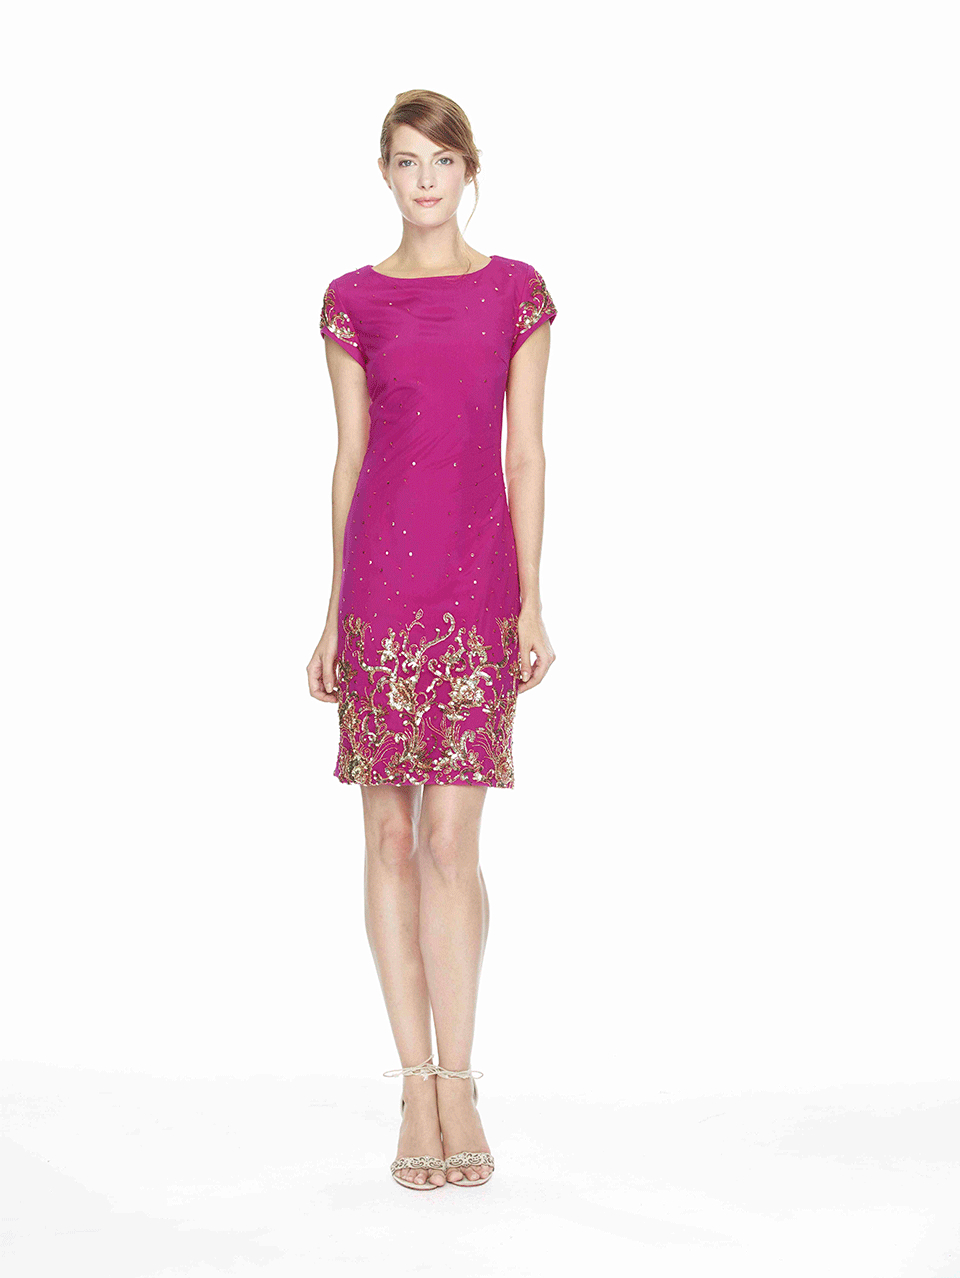 Notte by marchesa Beaded Shift Cocktail Dress in Pink | Lyst